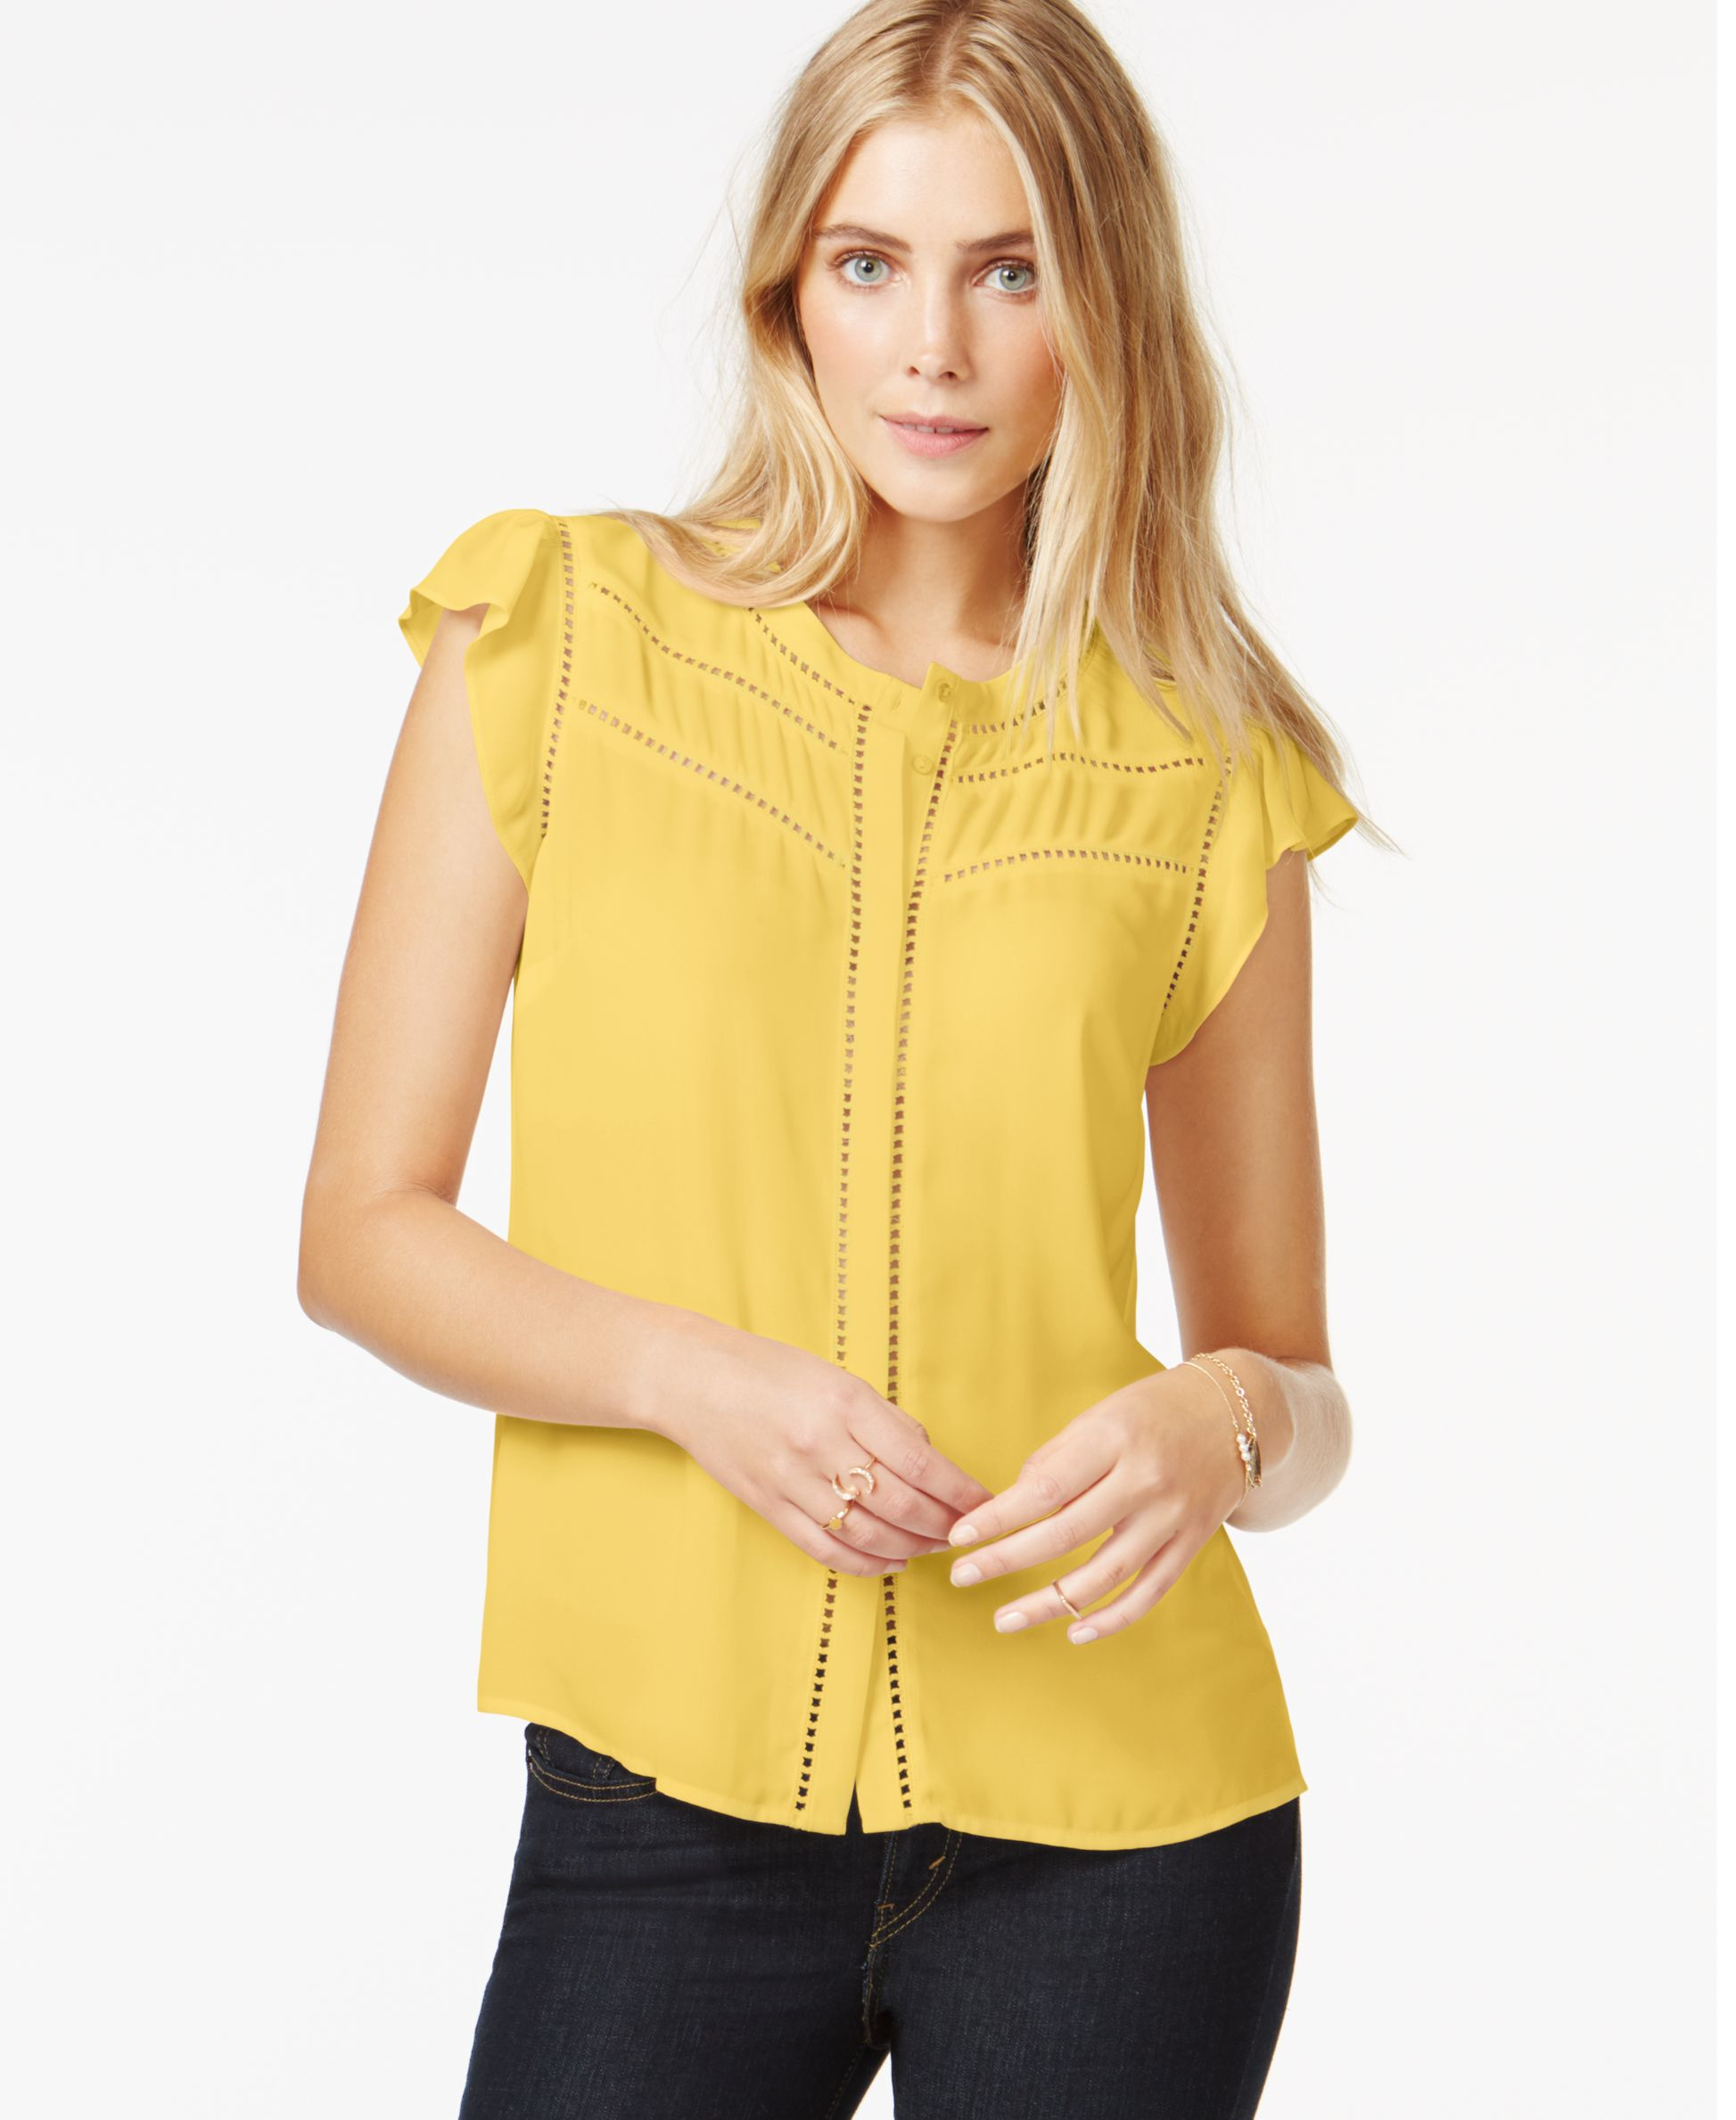 Macy S Formal Blouse Tfnlimo Com